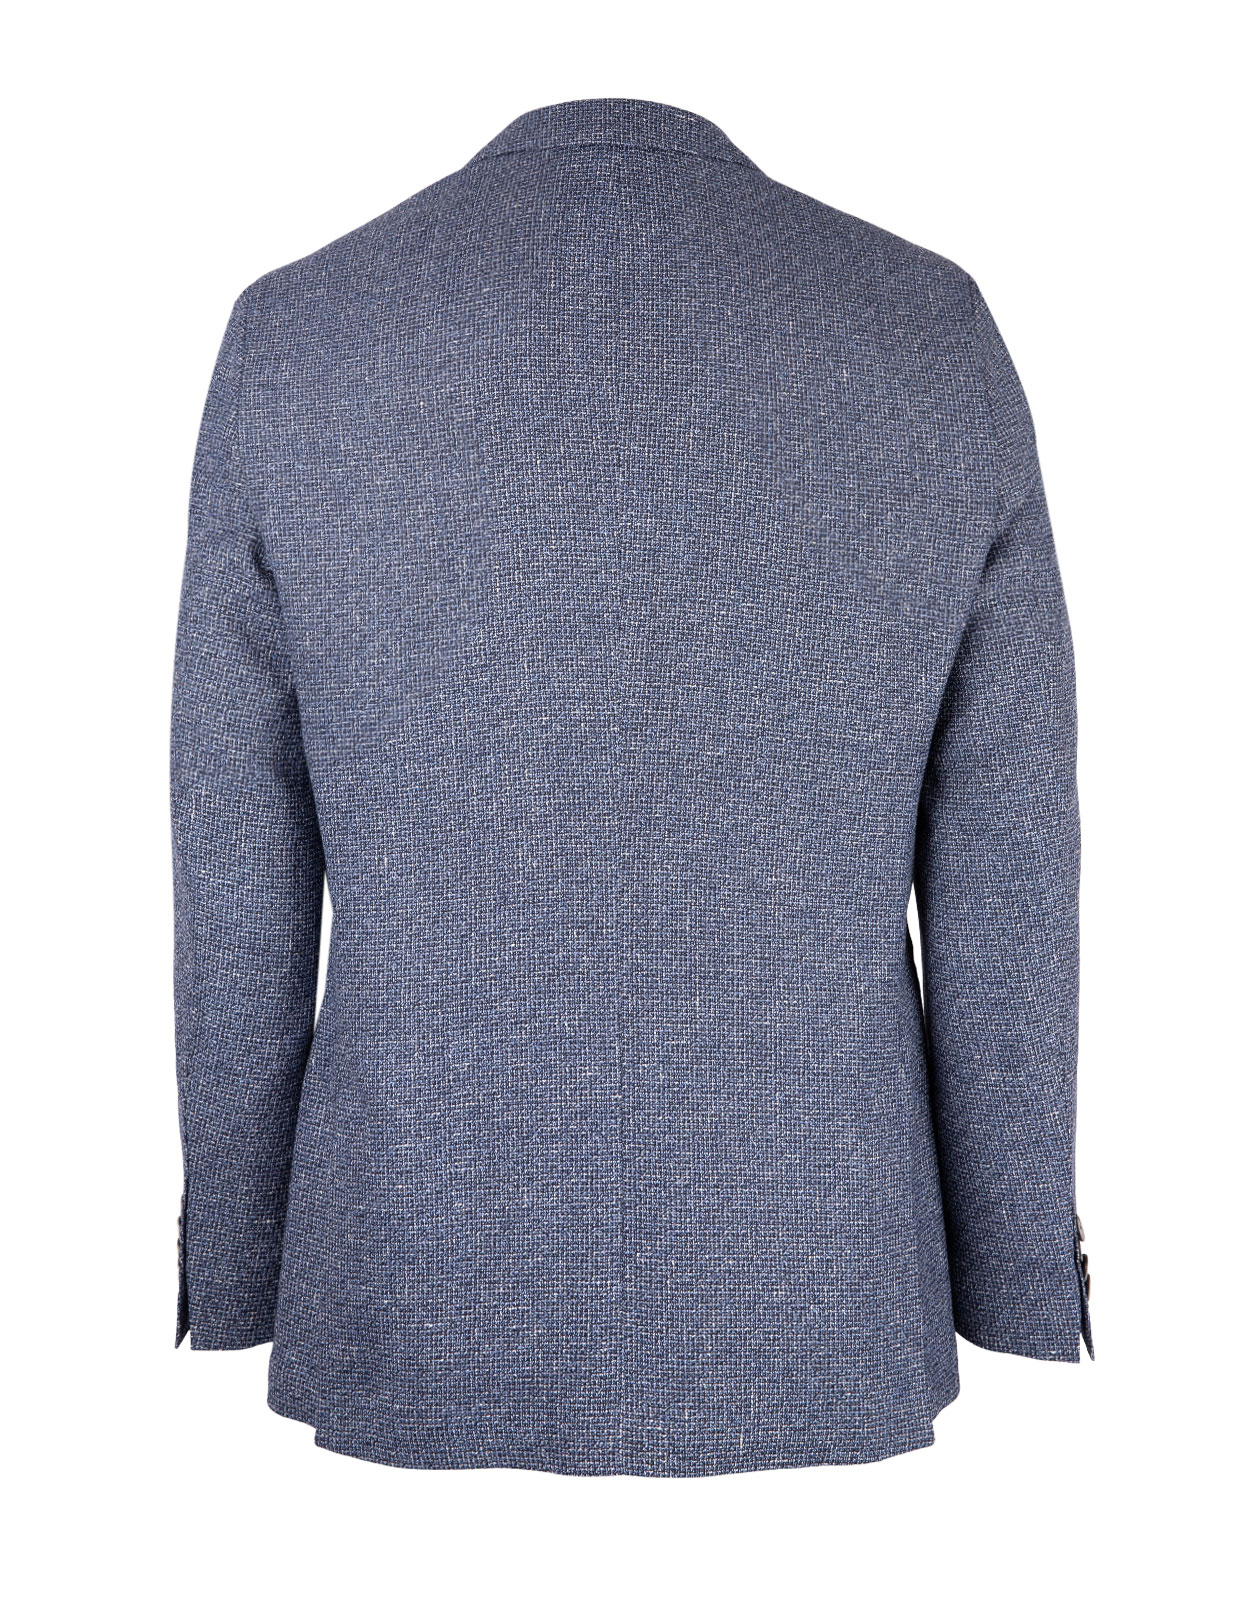 Jawen Regular Fit Blazer Wool Linen Open Blue